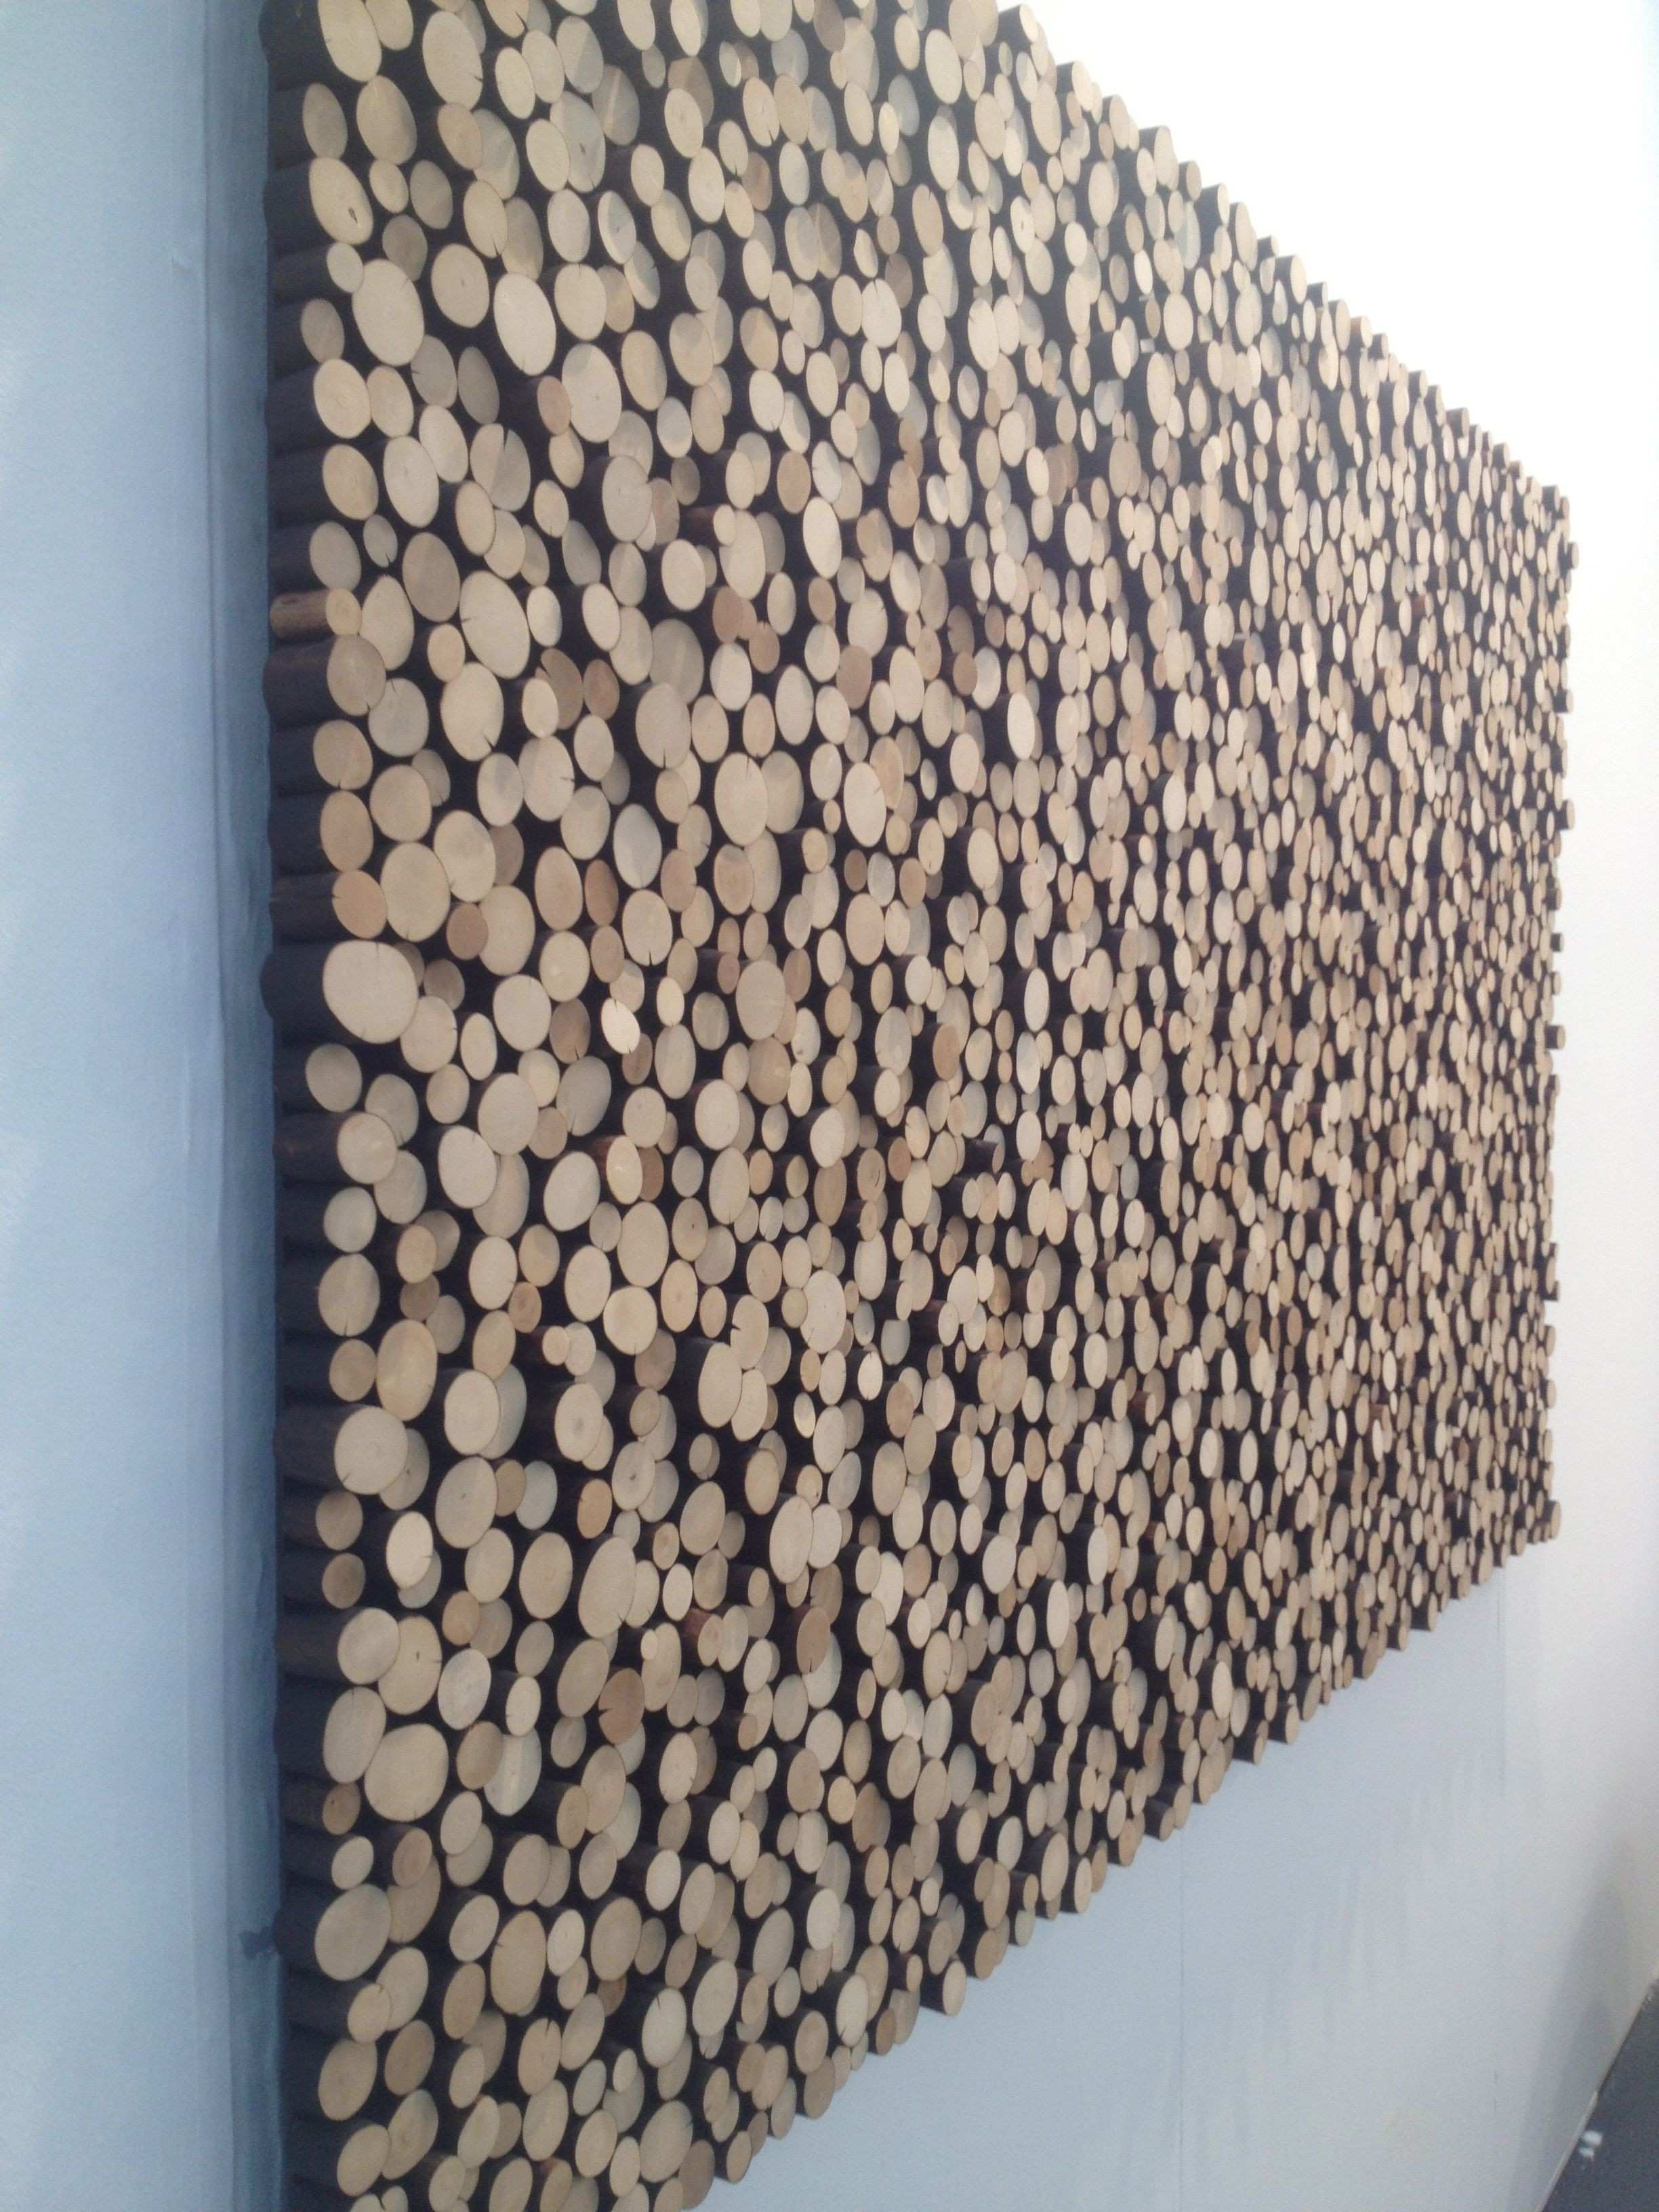 Interesting wall covering done by an artist at the Affordable Art